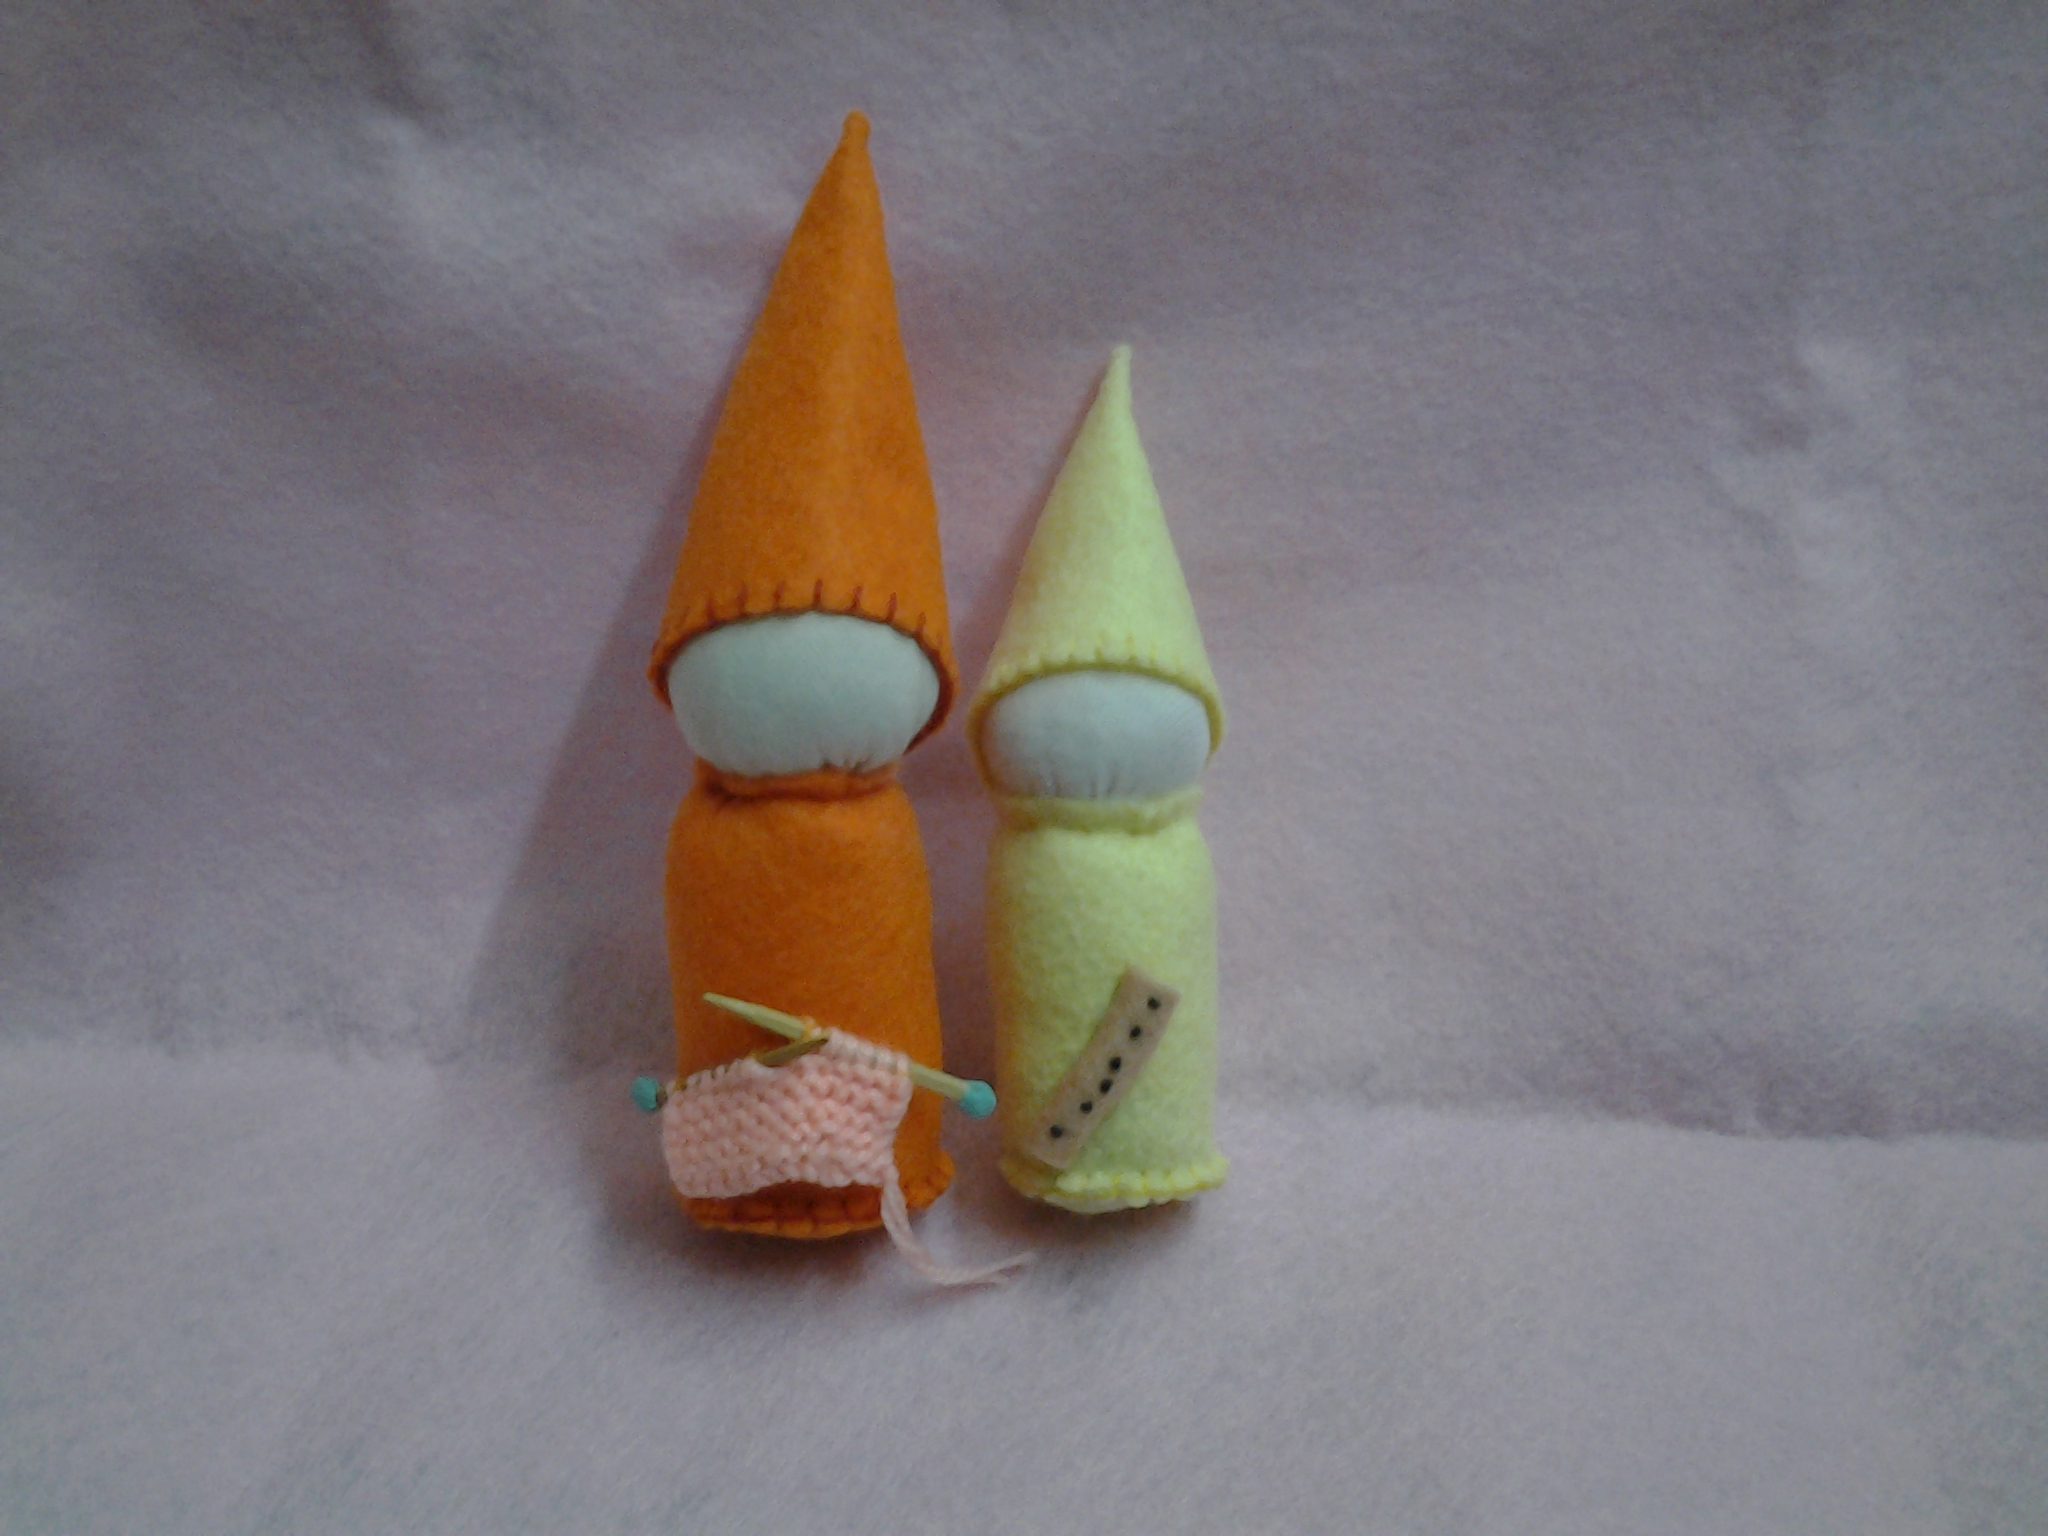 Knit gnome and flute gnome